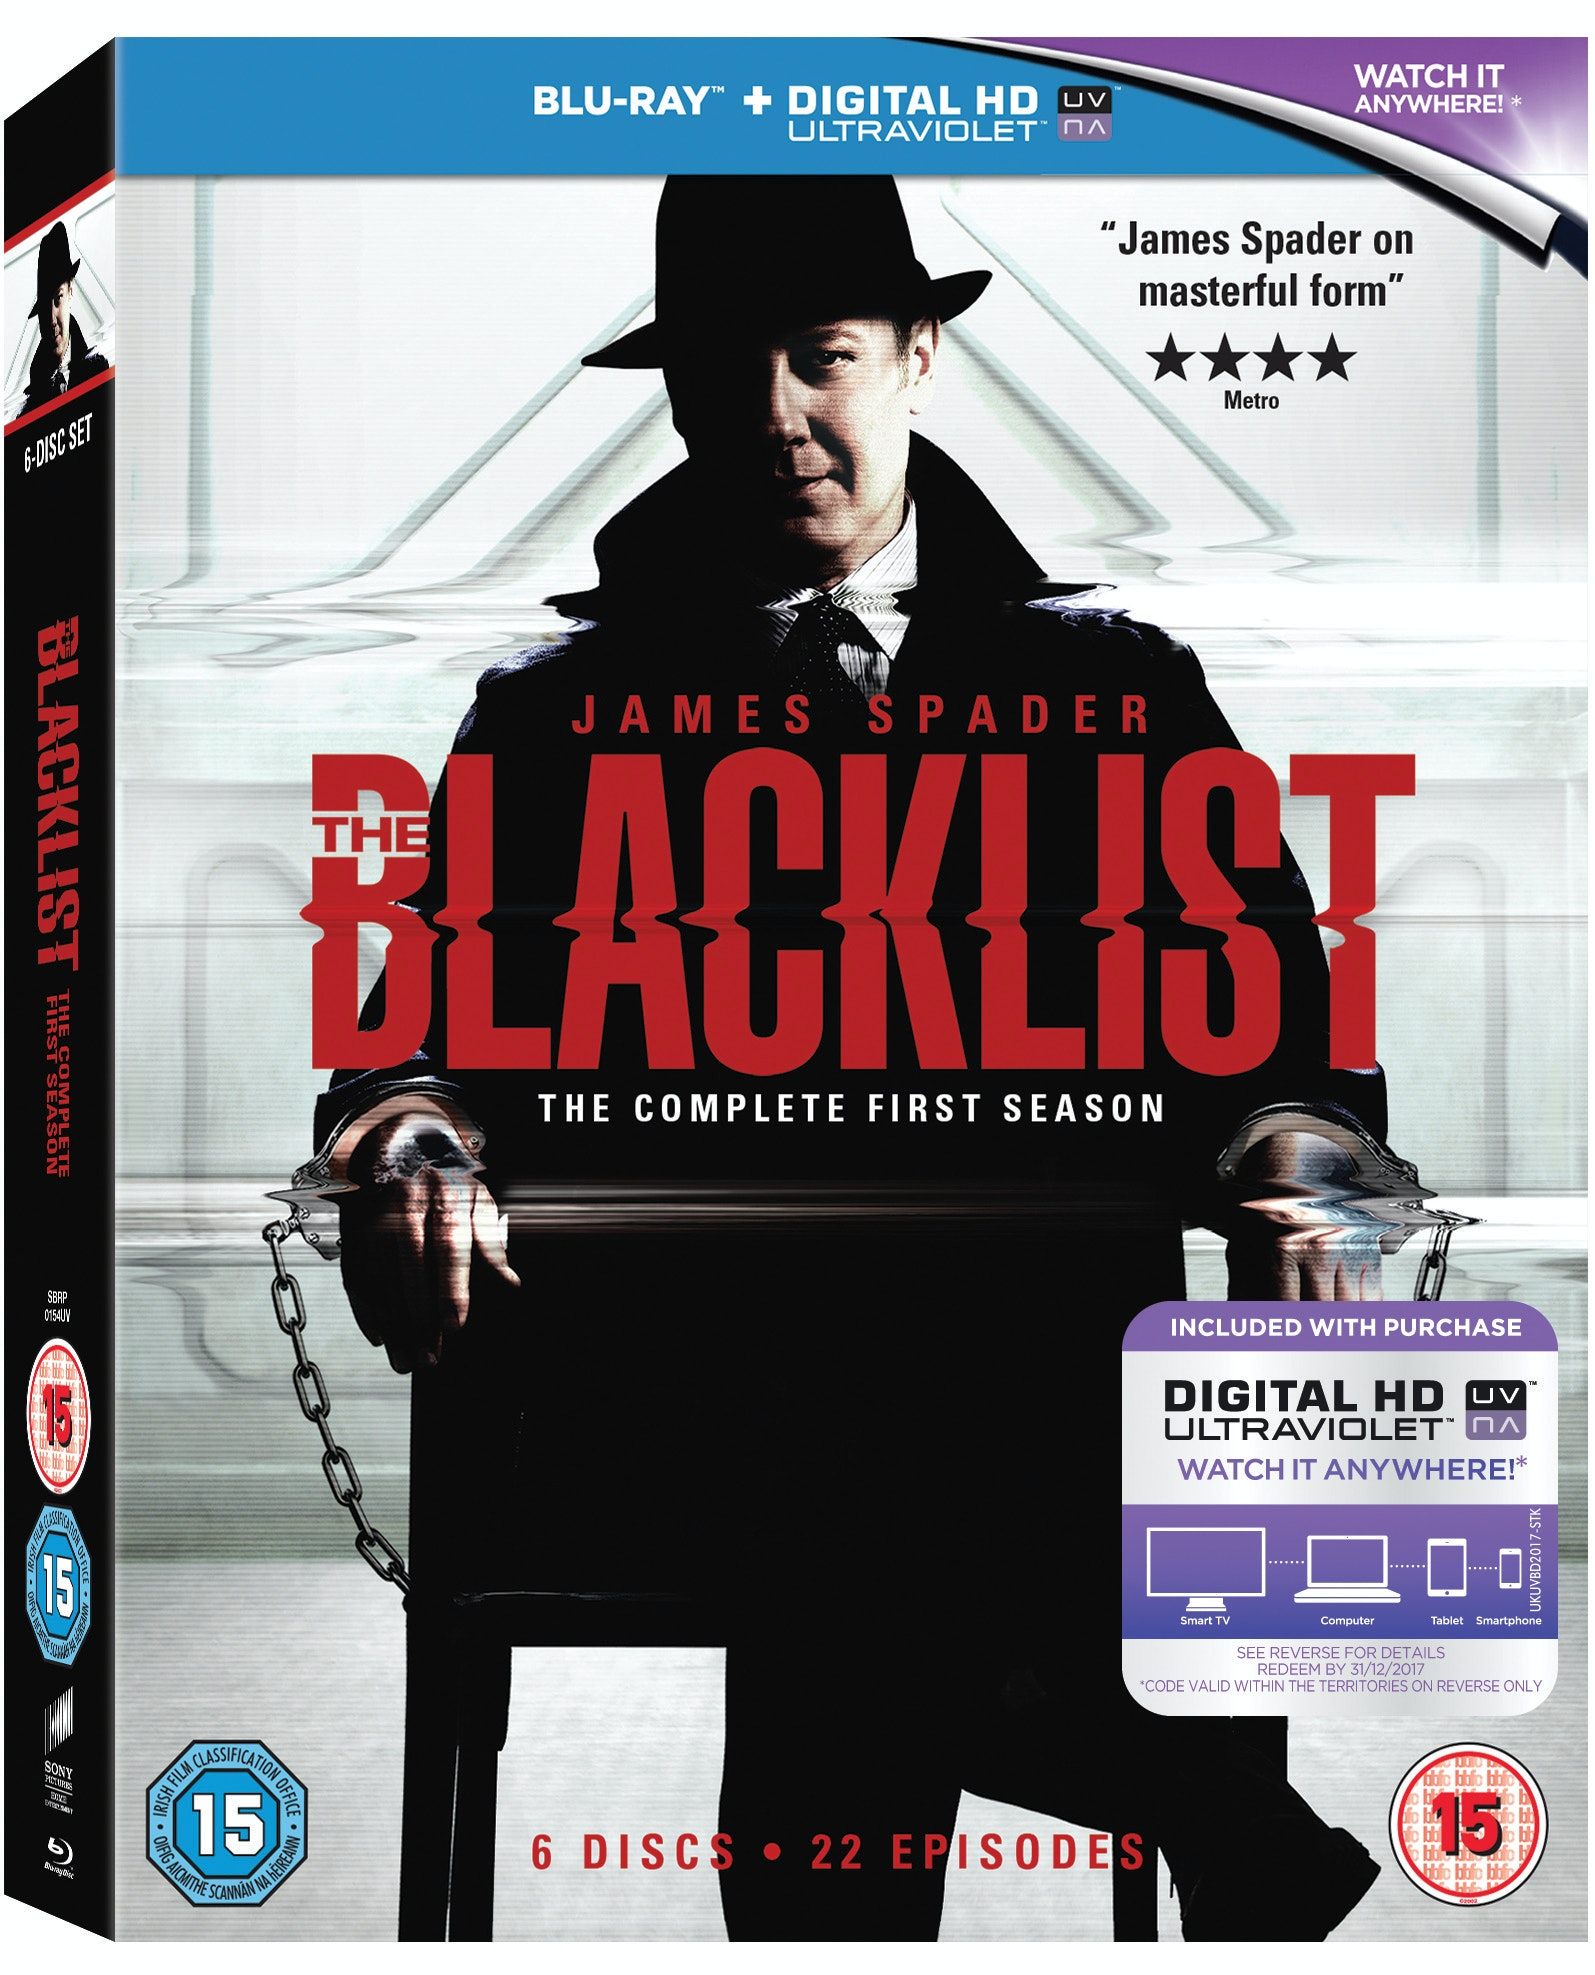 The Blacklist sweepstakes